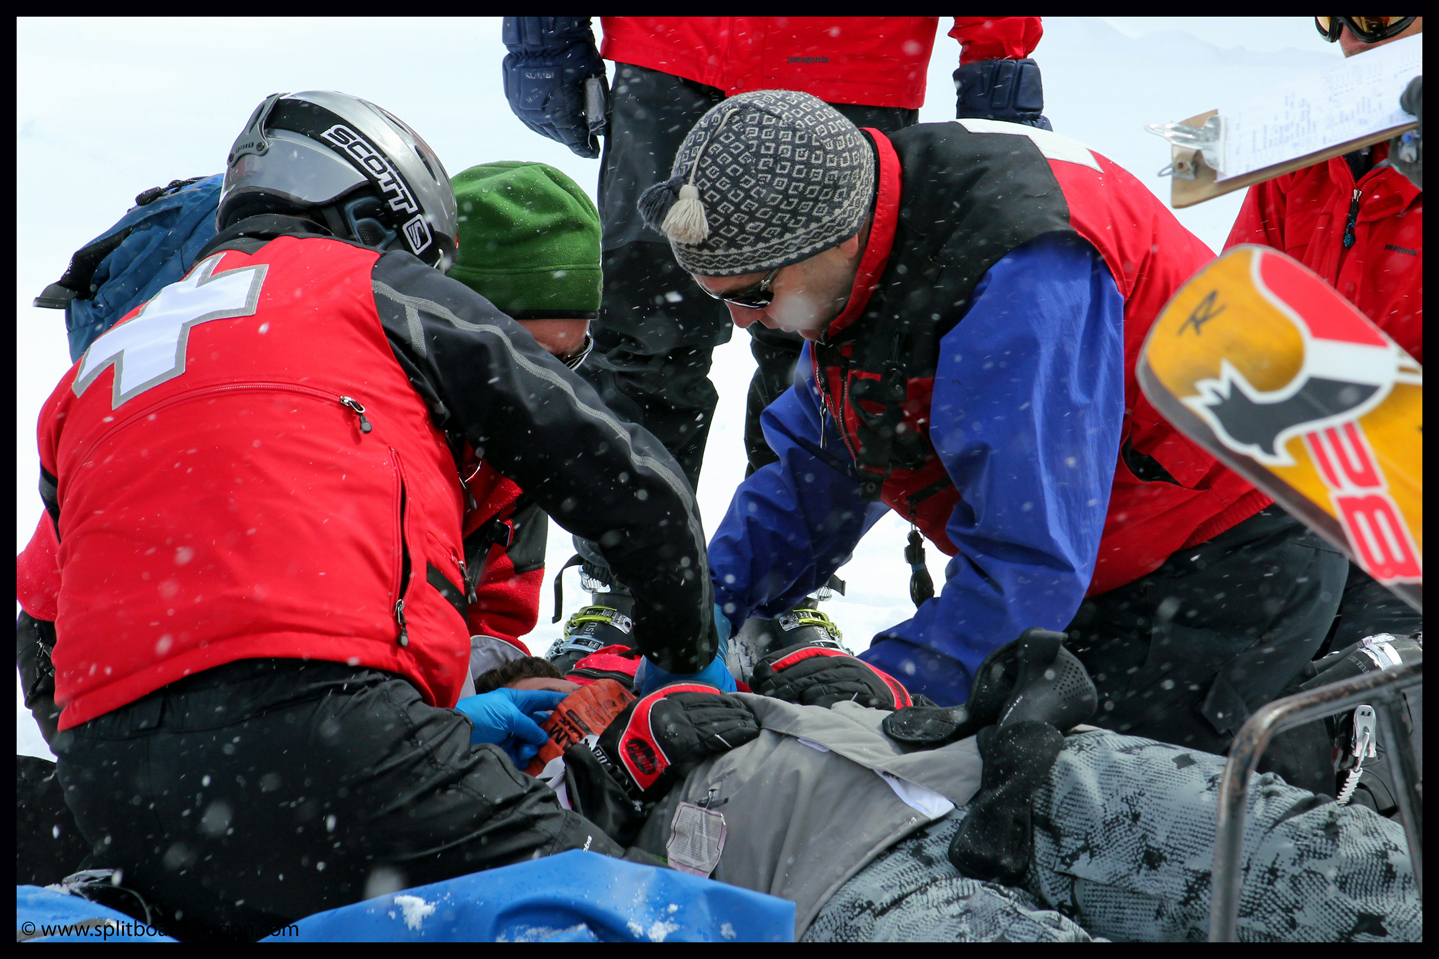 Tending to a patient during a scenario